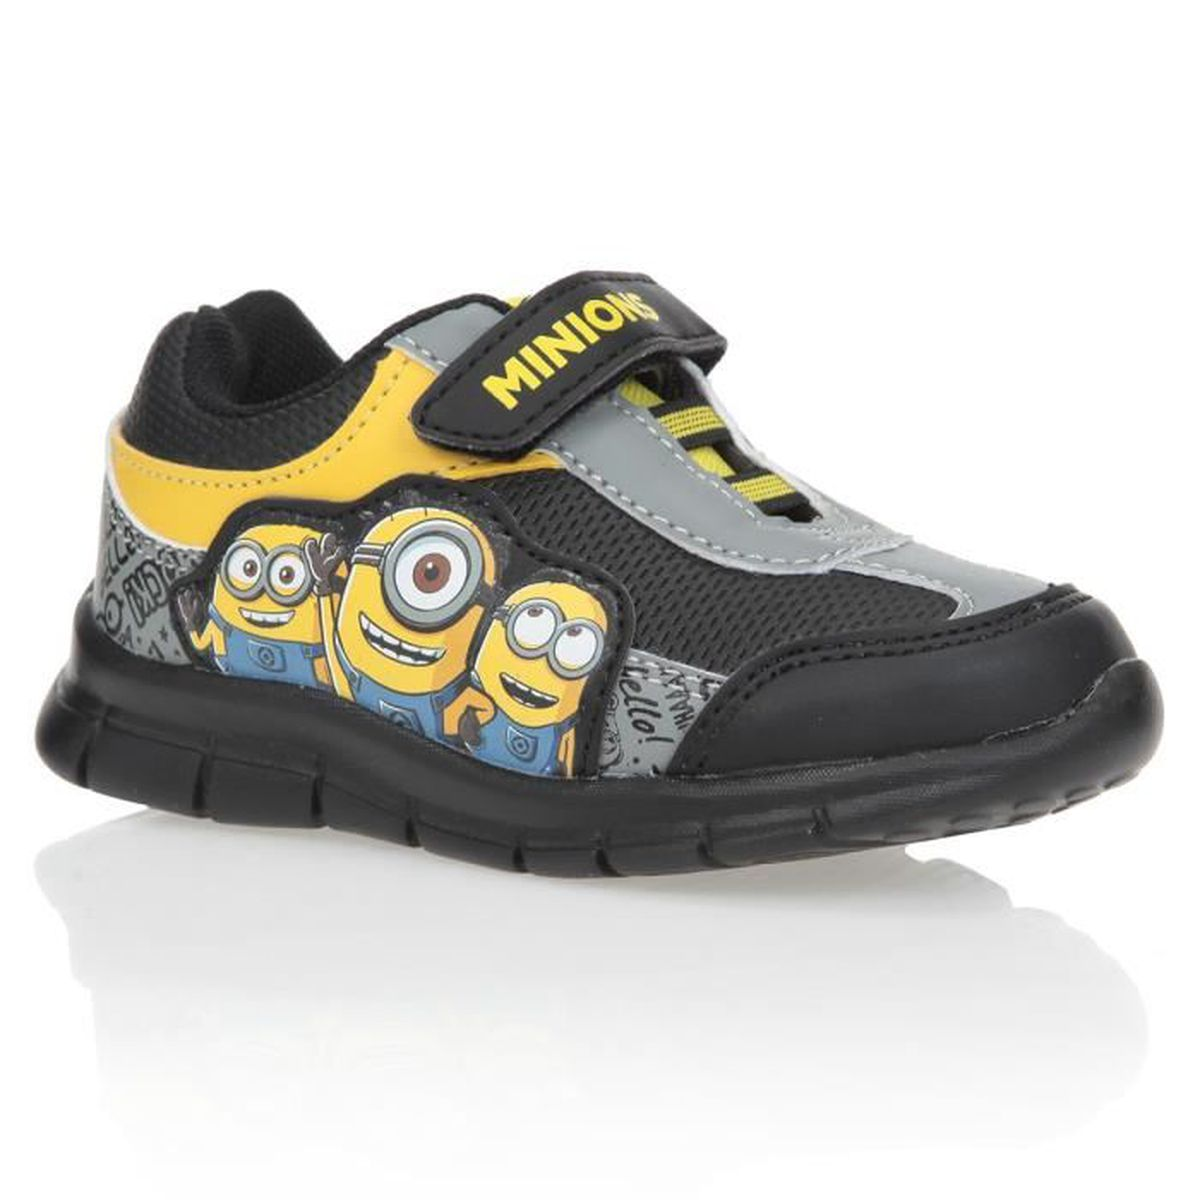 les minions baskets chaussures enfant gar on achat vente basket cdiscount. Black Bedroom Furniture Sets. Home Design Ideas